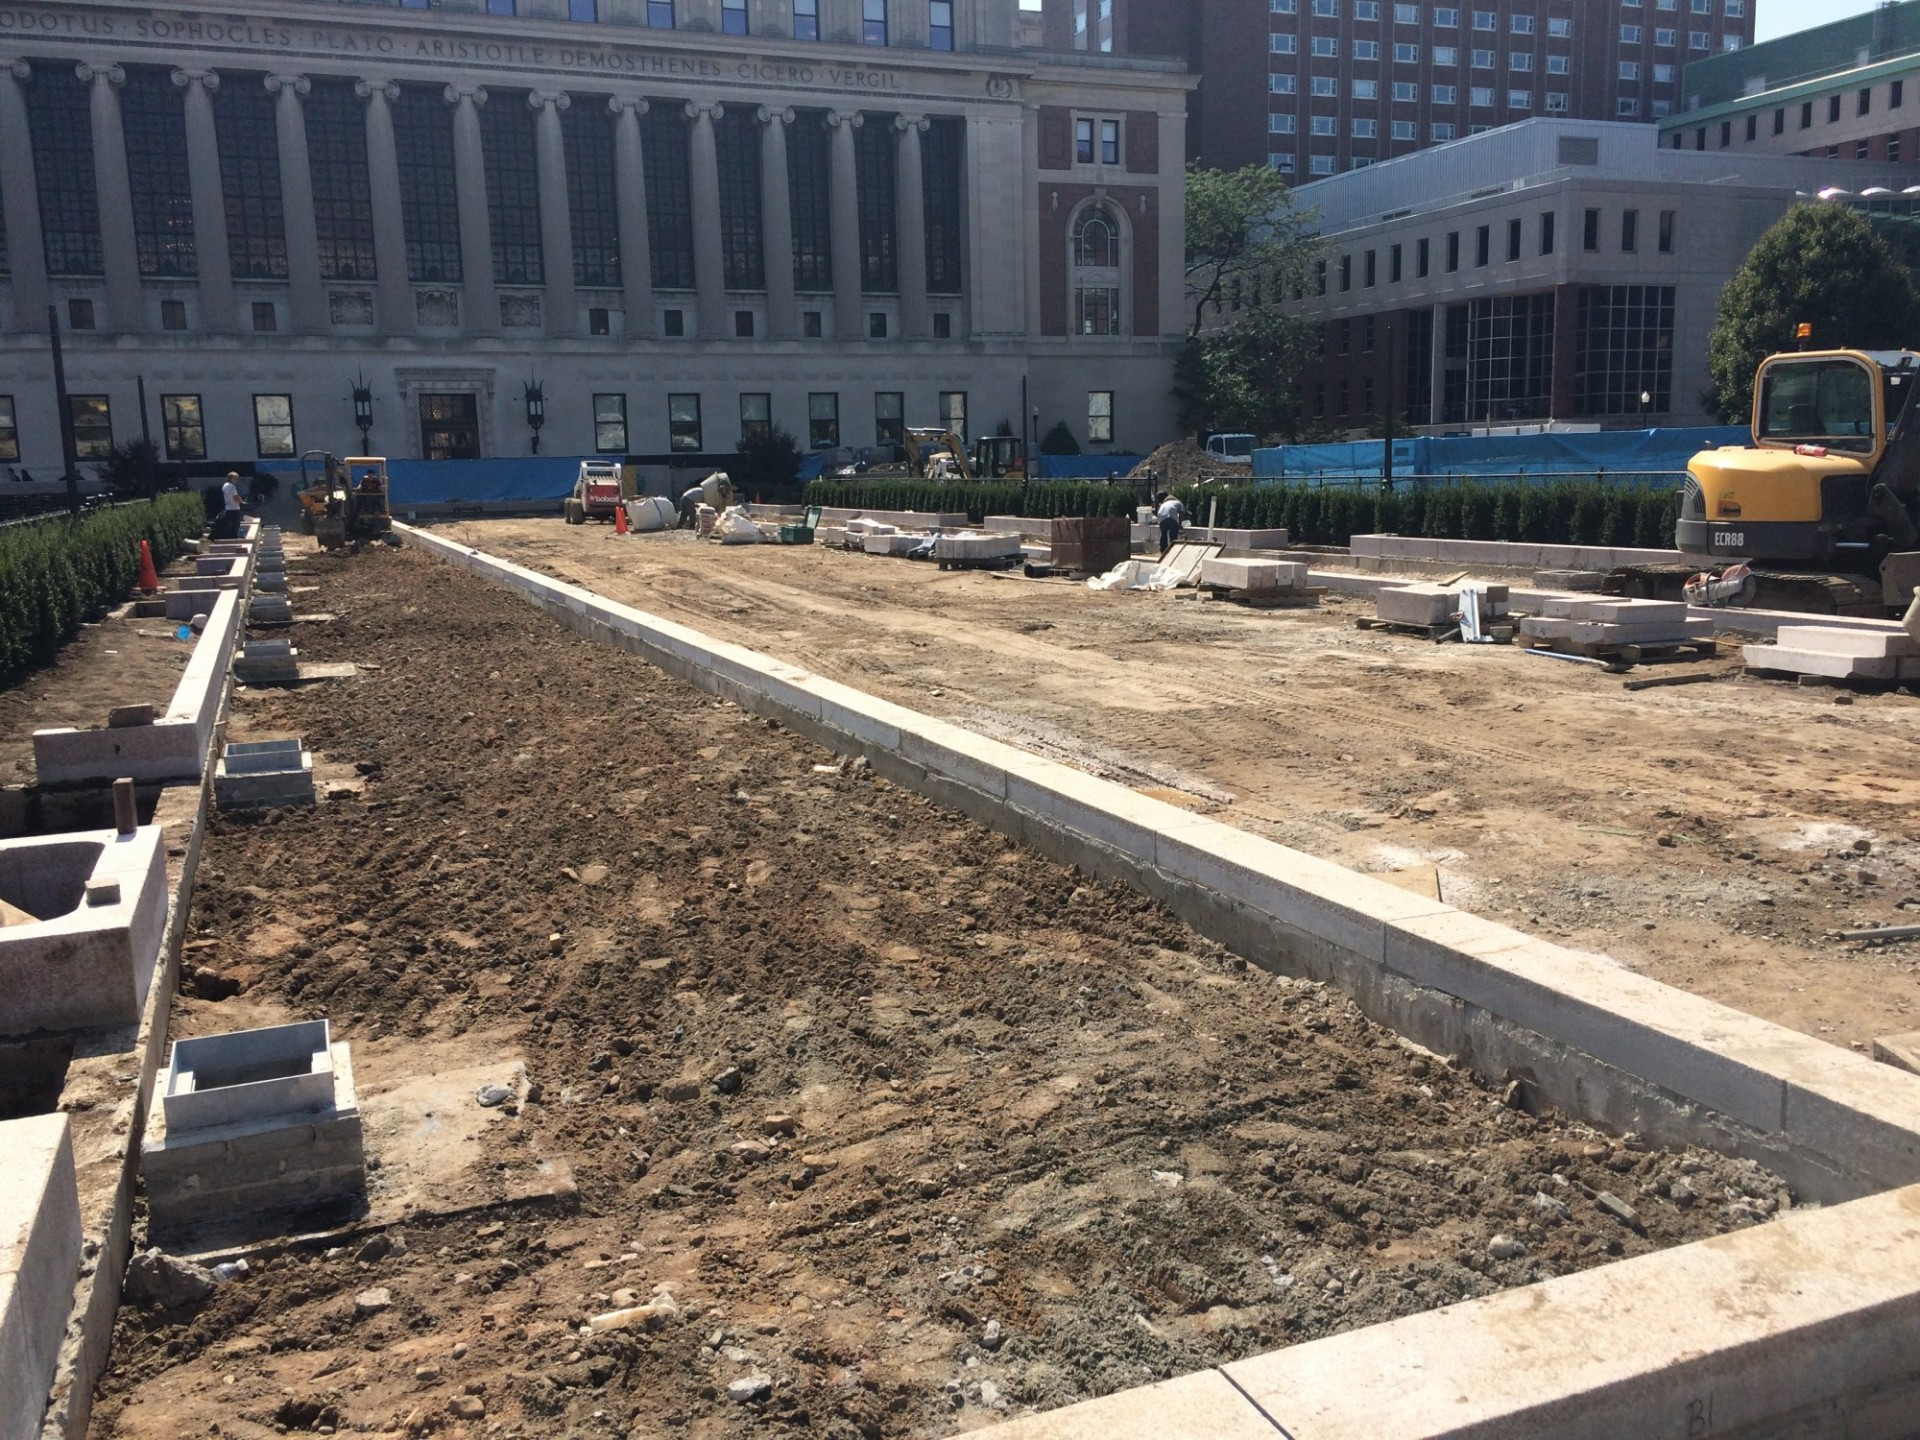 Granite curbs framing out the spaces between Butler Lawn and its east and west pathways (Photo from September 11, 2017)